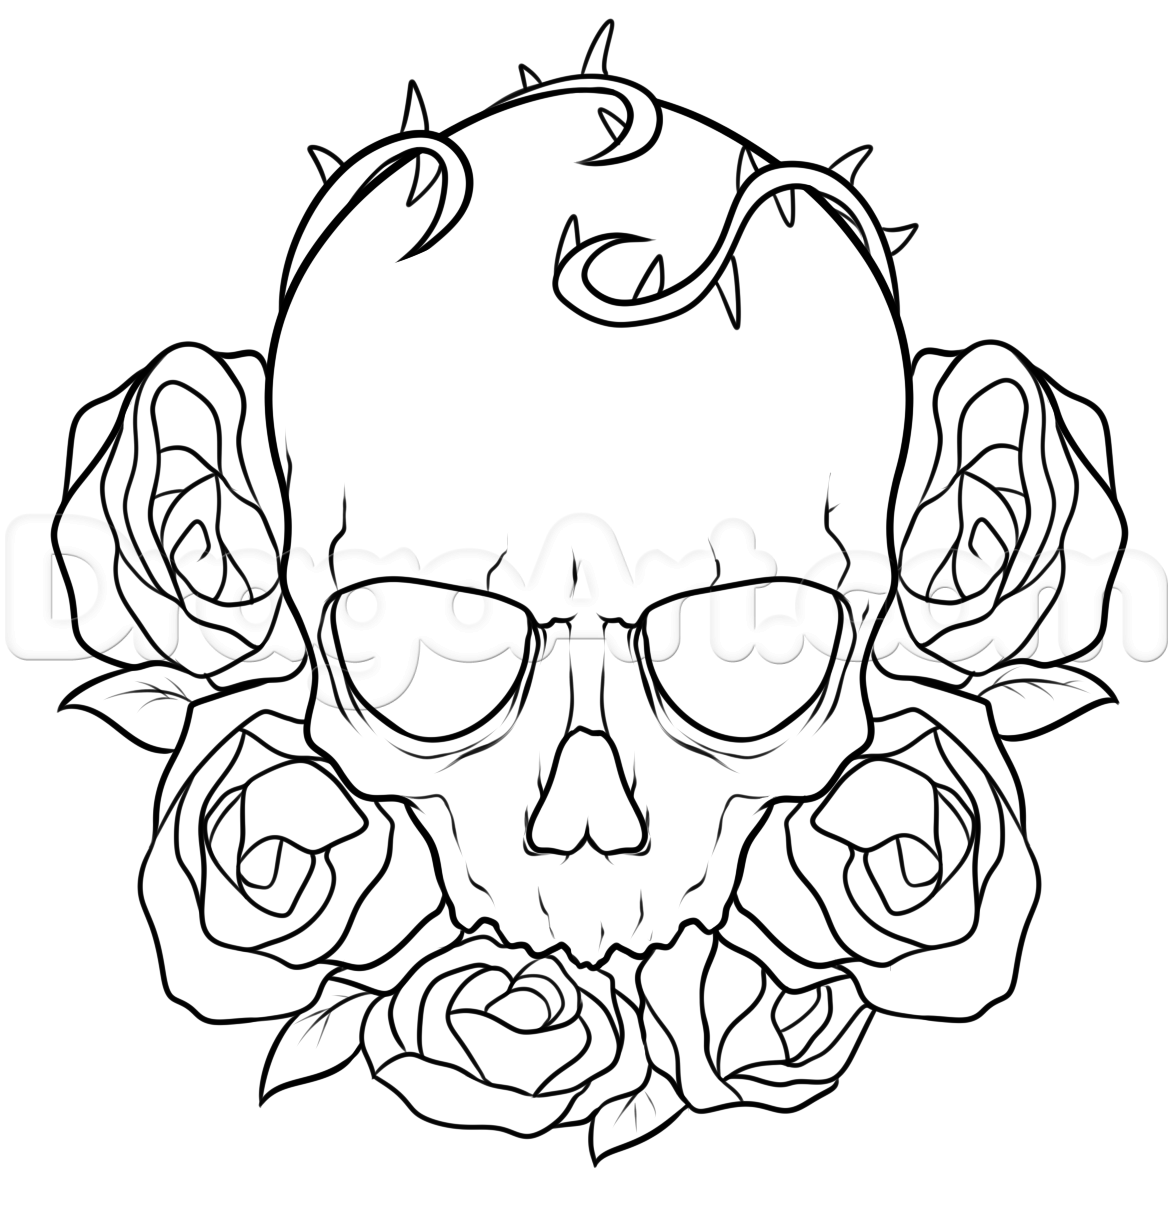 1173x1222 How To Draw A Skull And Roses Tattoo Step 7 Skulls